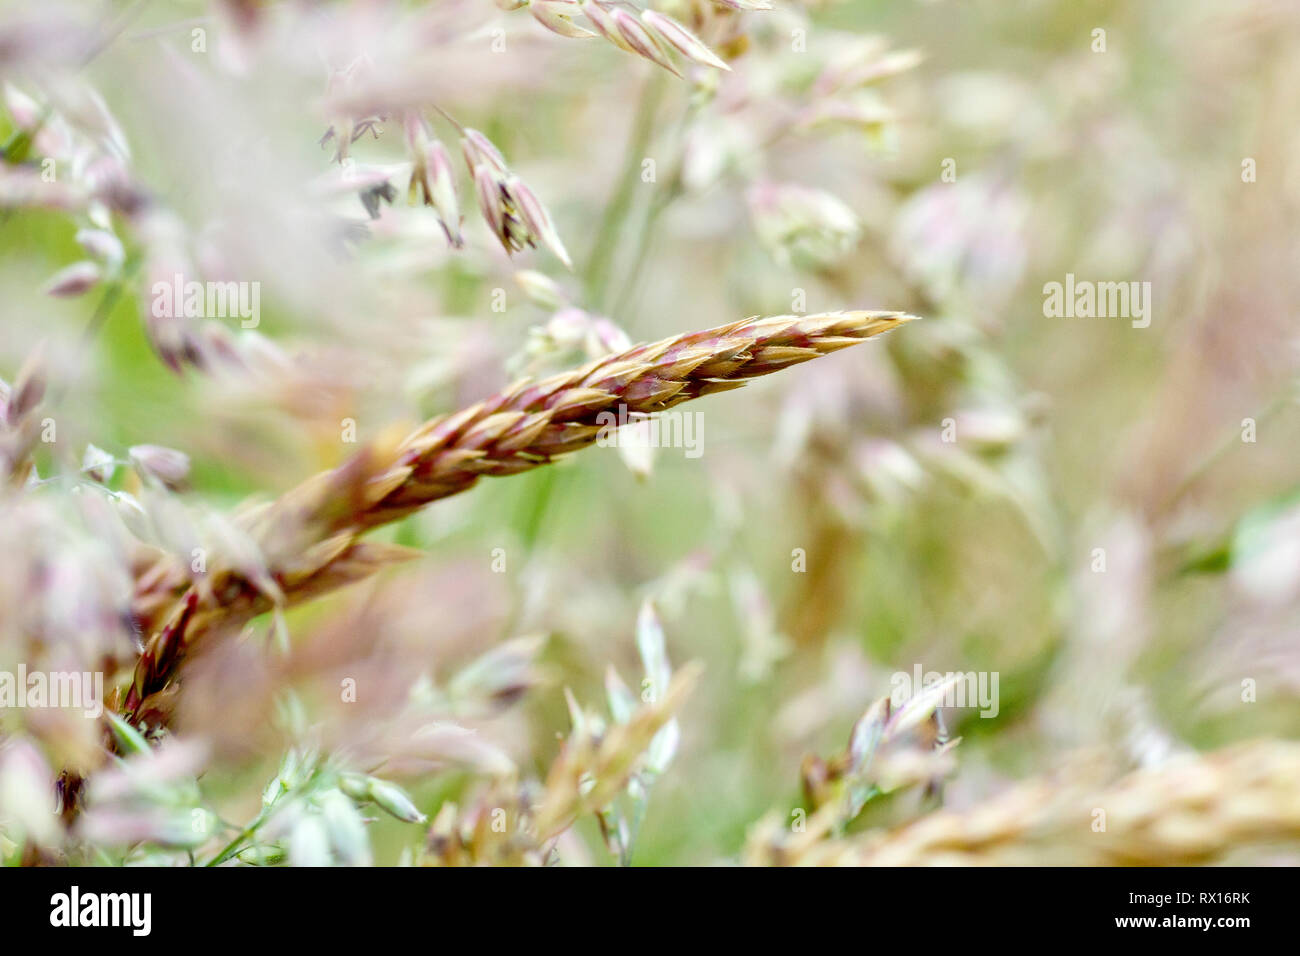 Grass, predominantly Yorkshire Fog (holcus lanatus), shot before flowering with low depth of field. Stock Photo